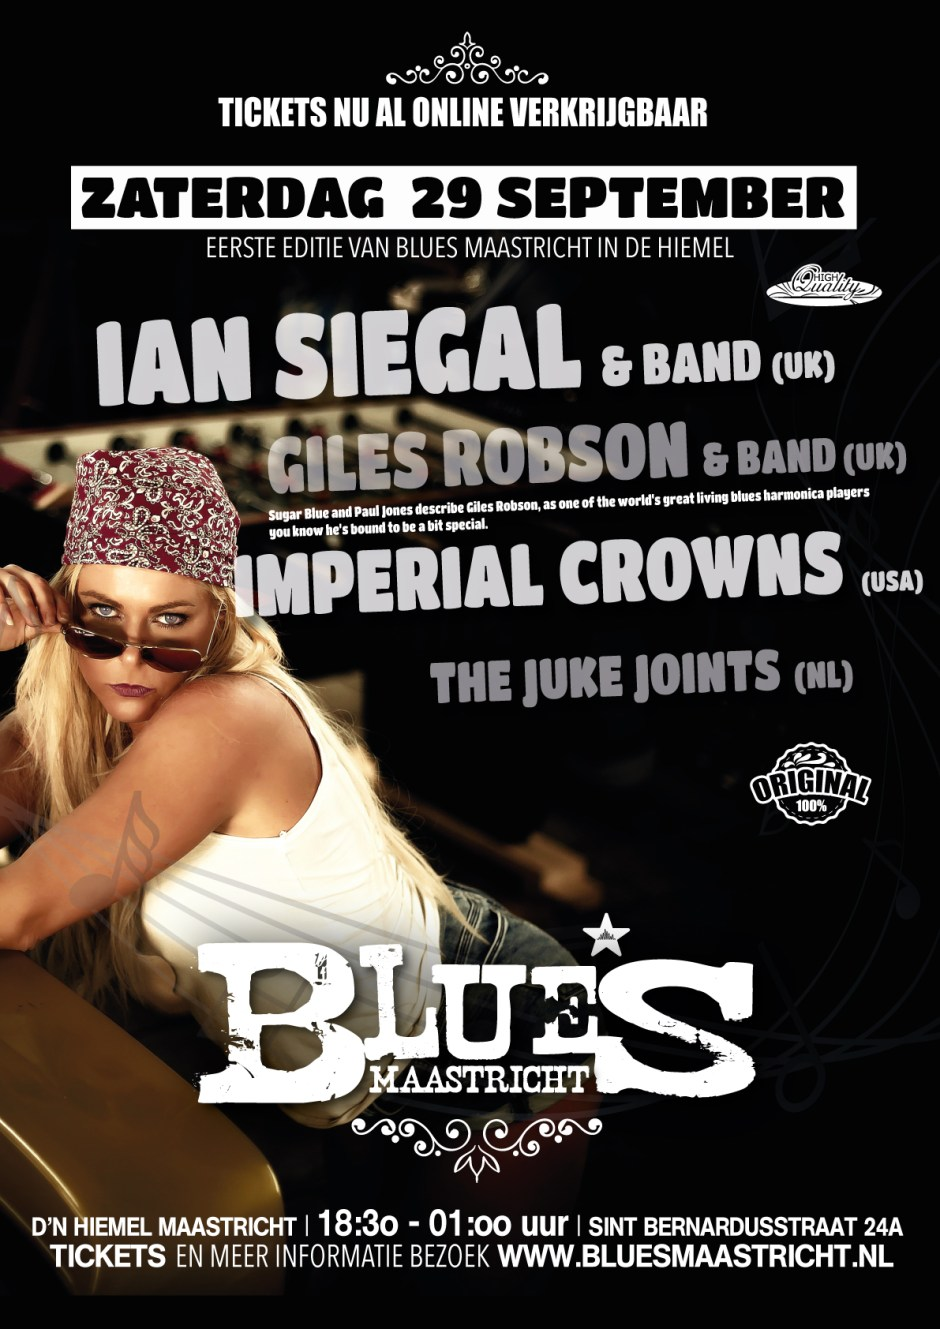 poster-internet-blues-maastricht